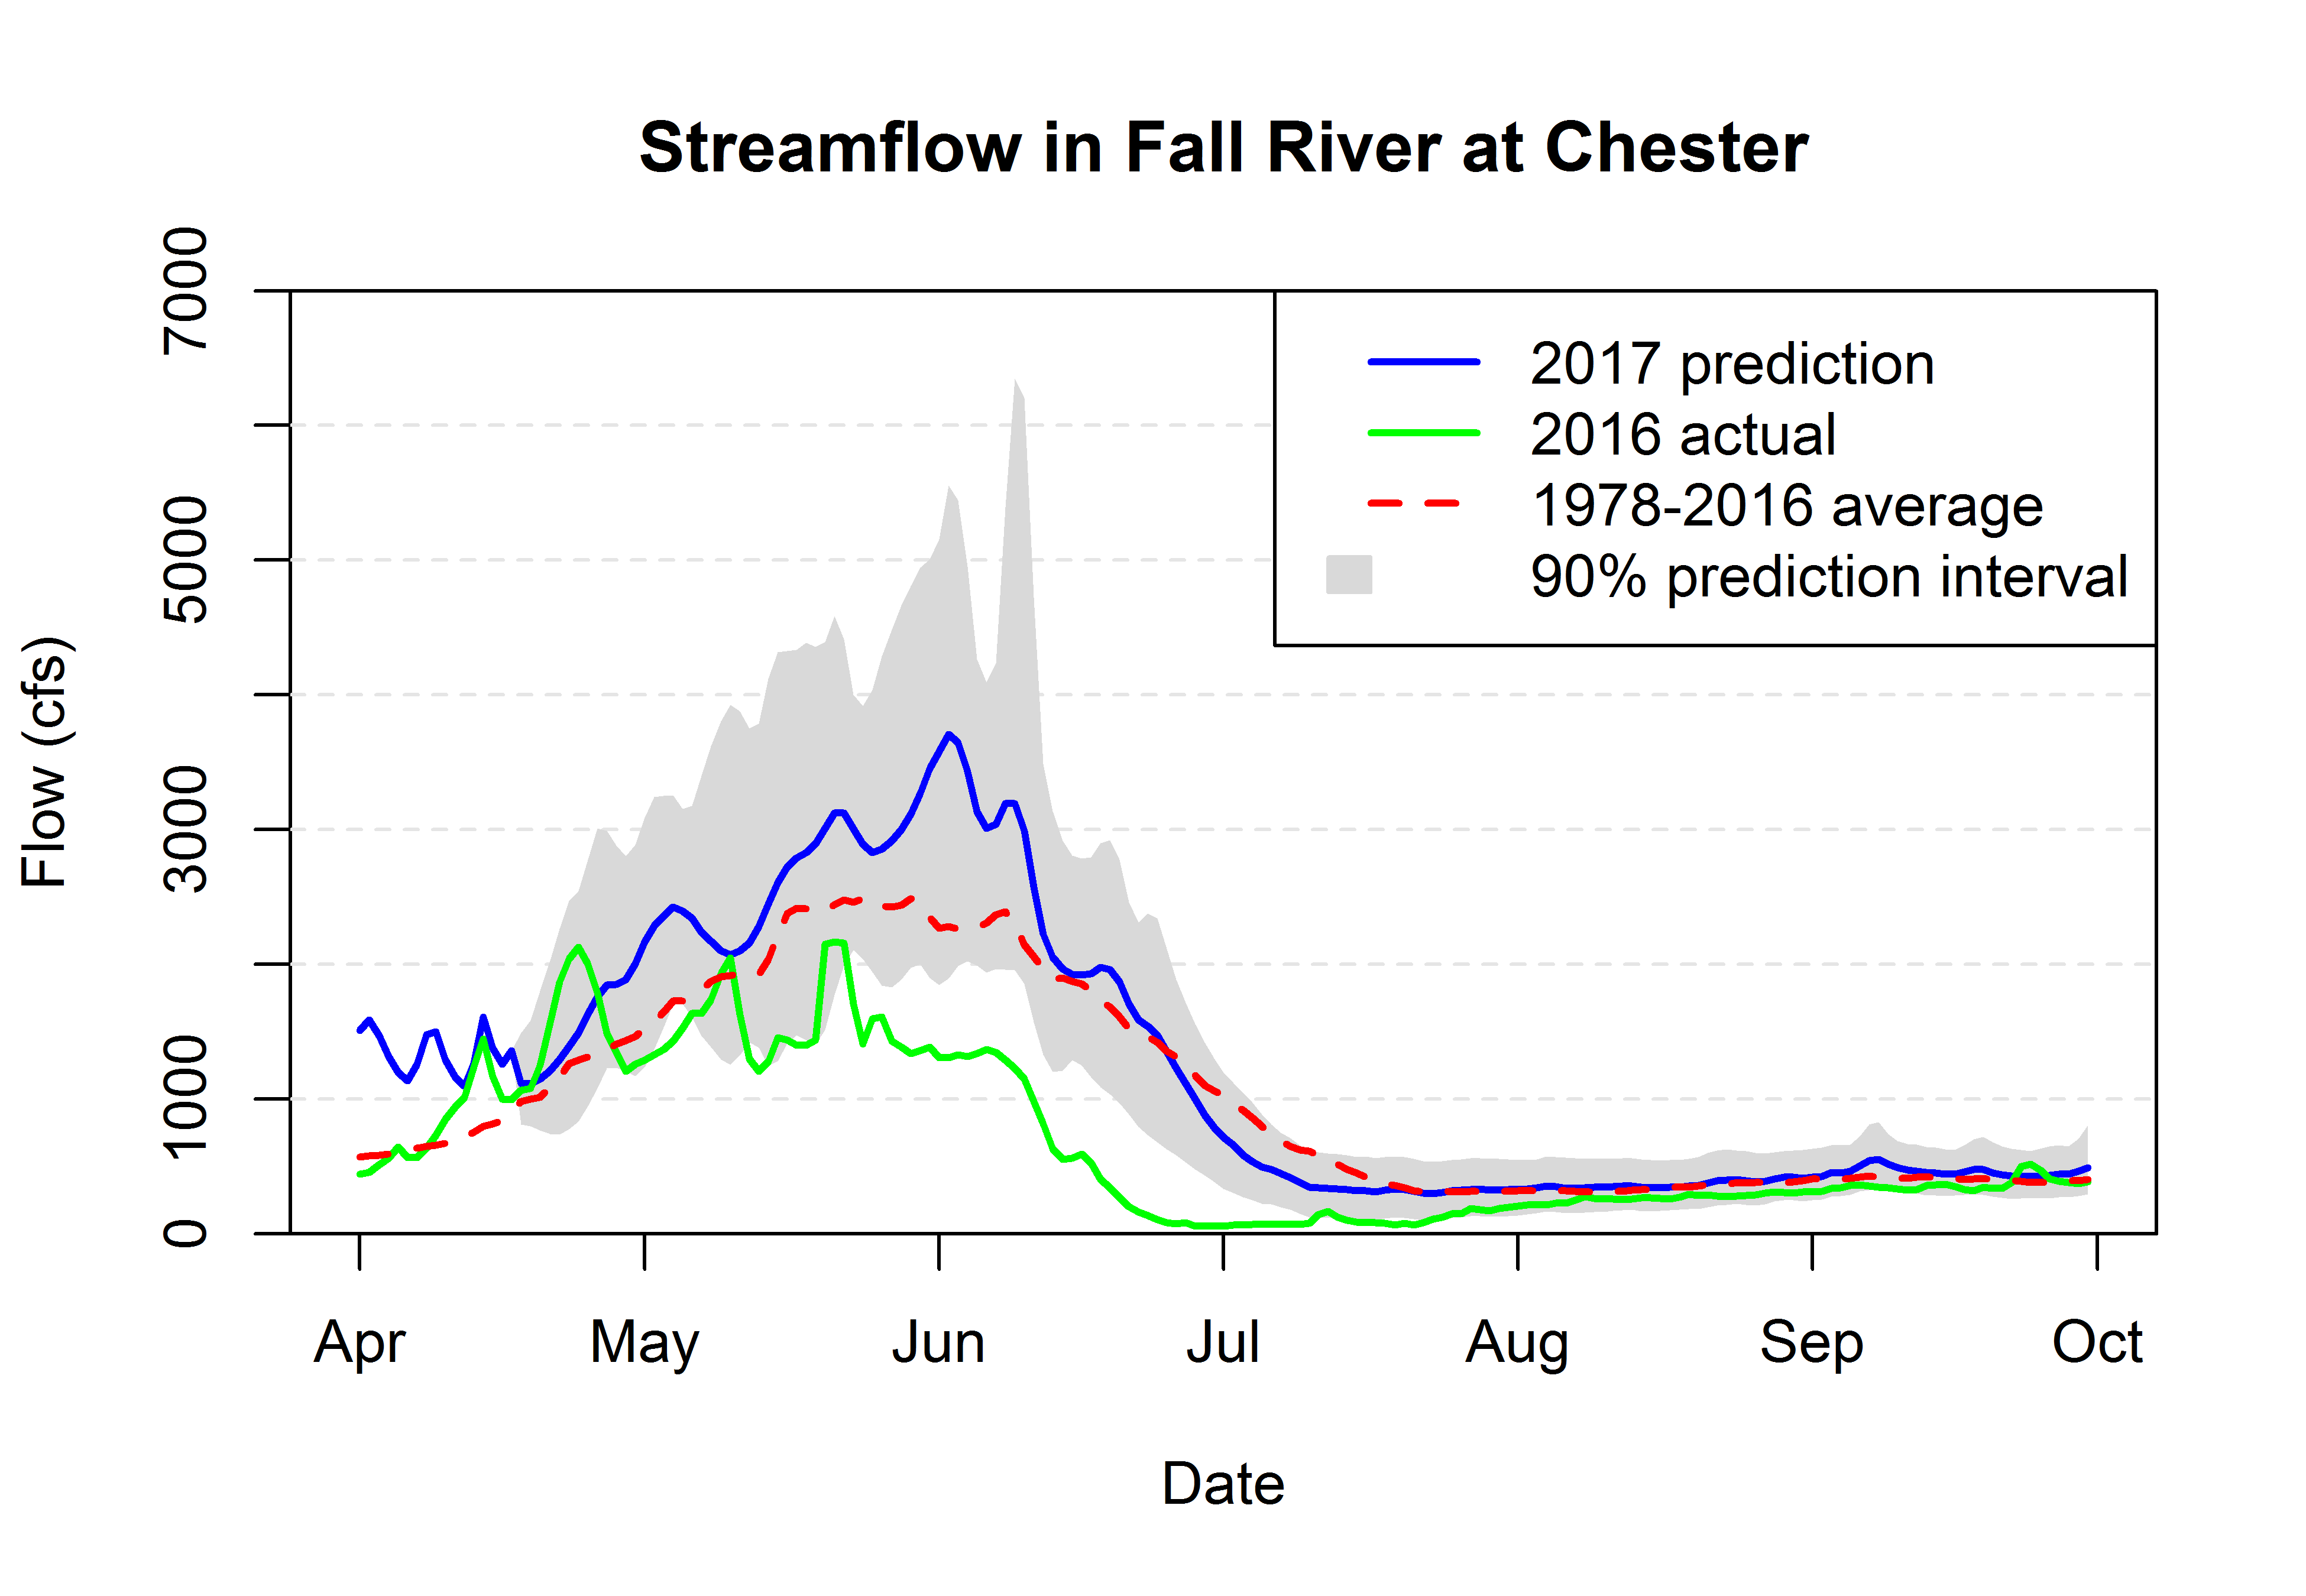 Graph of streamflow in Fall River at Chester